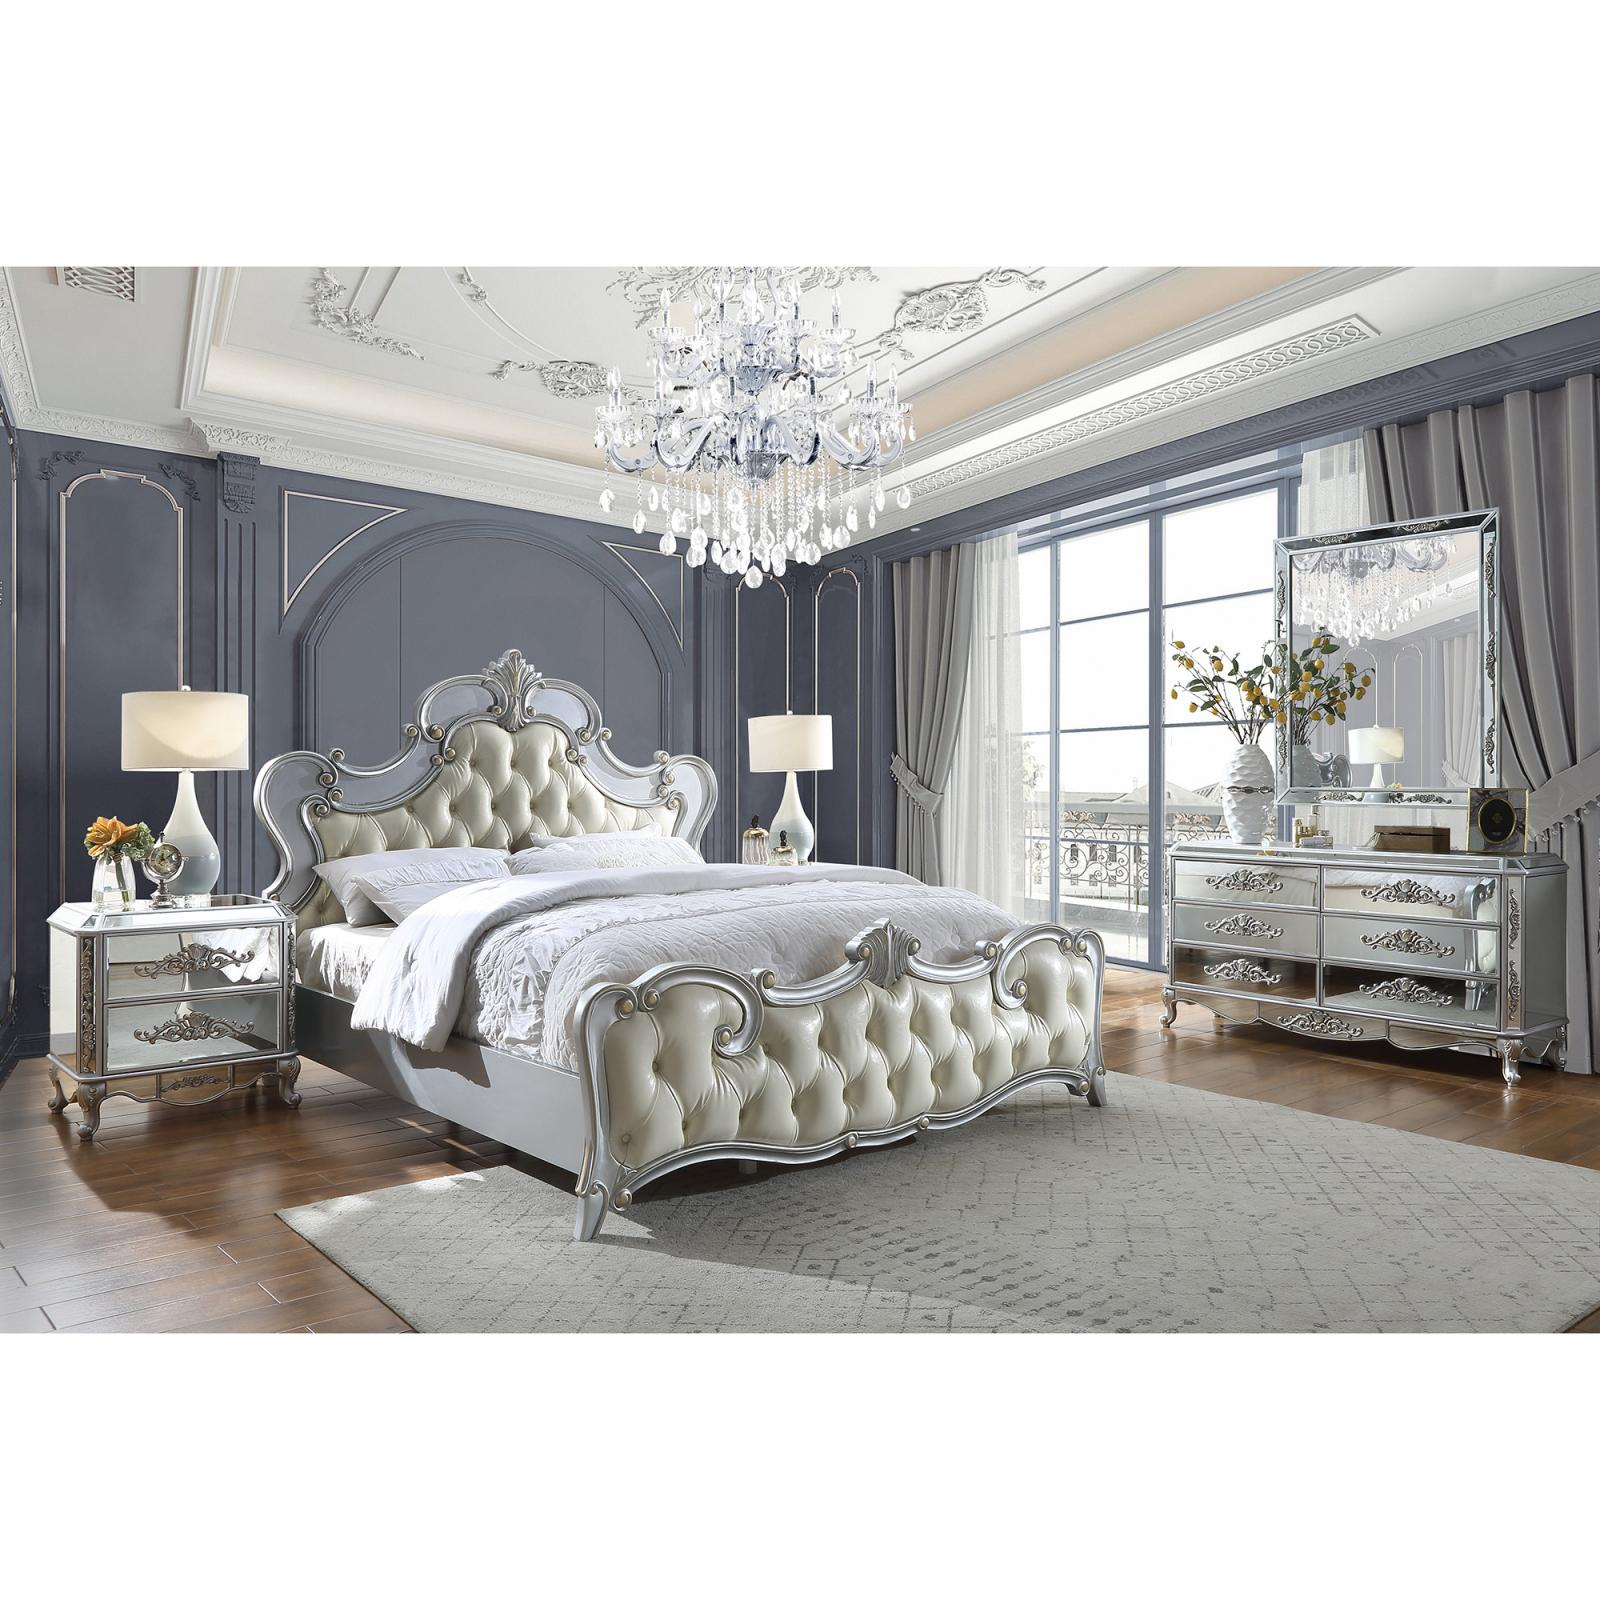 Traditional Silver, Antique Faux Leather and Wood Califronia King Panel Bedroom Set 5 pcs HD-6036 by Homey Design